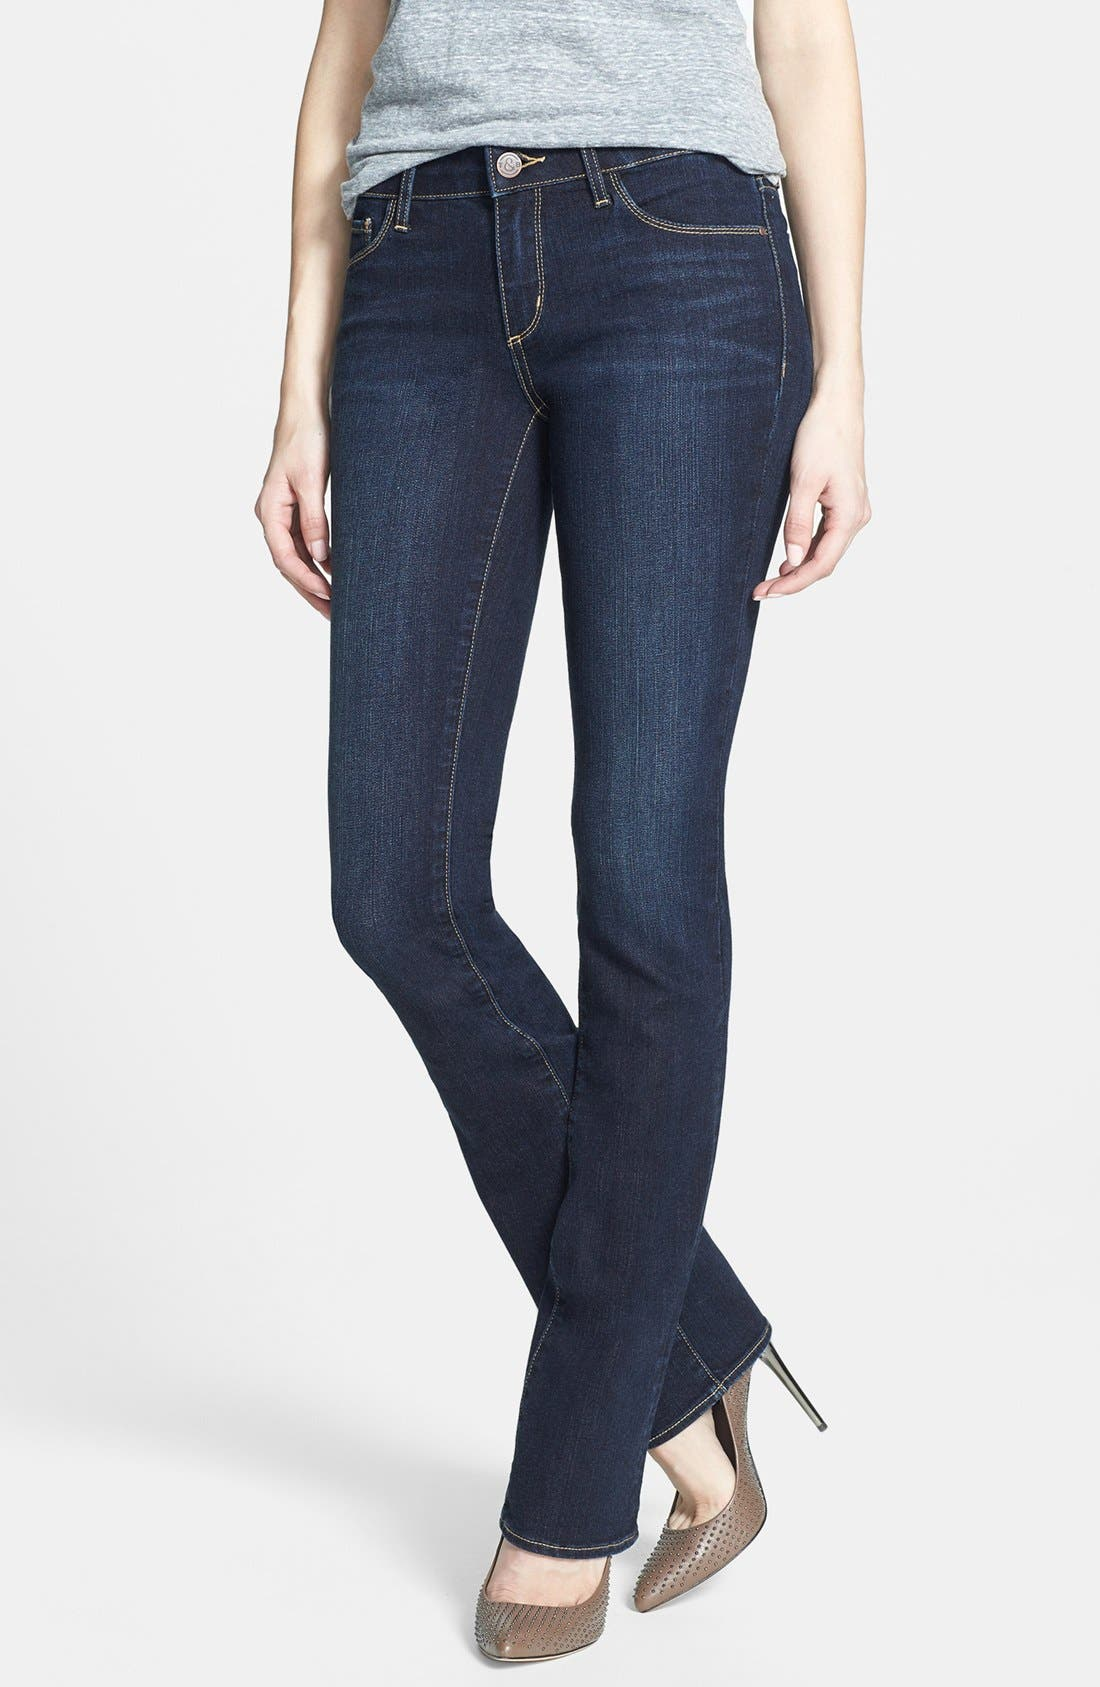 Main Image - Treasure&Bond Slim Bootcut Jeans (Dark)